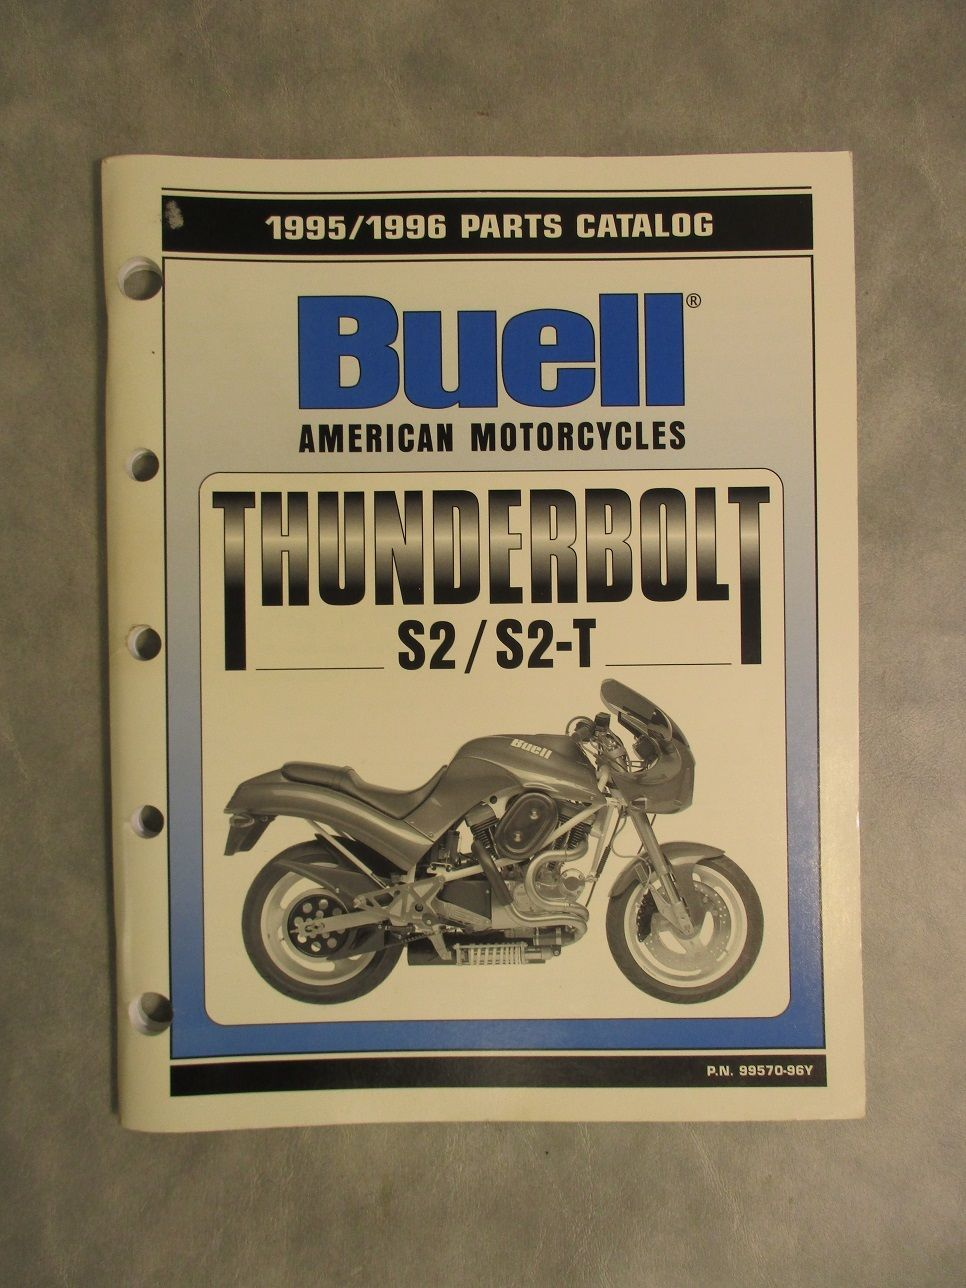 99570-96Y Buell Thunderbolt S2 / S2-T Parts Catalog (1995/1996)